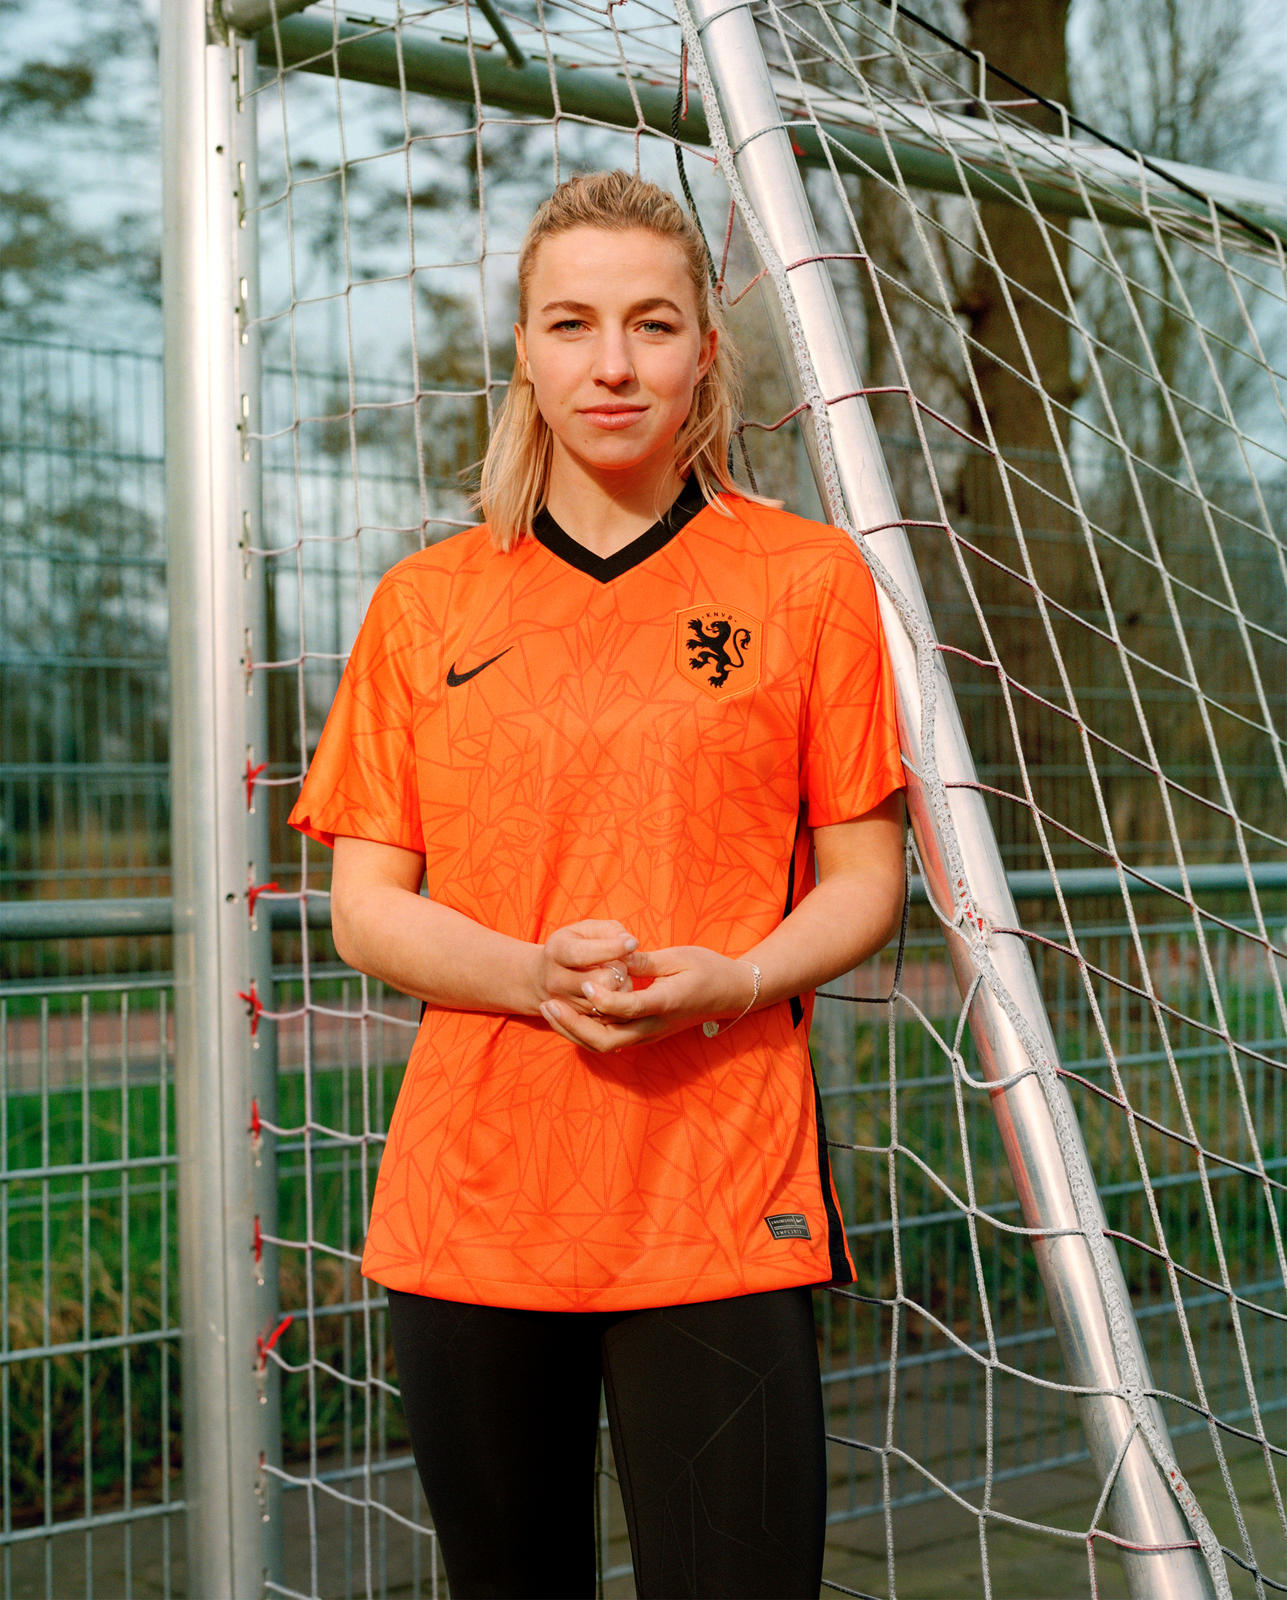 The Netherlands celebrates strength and bravery in new Nike collection 9